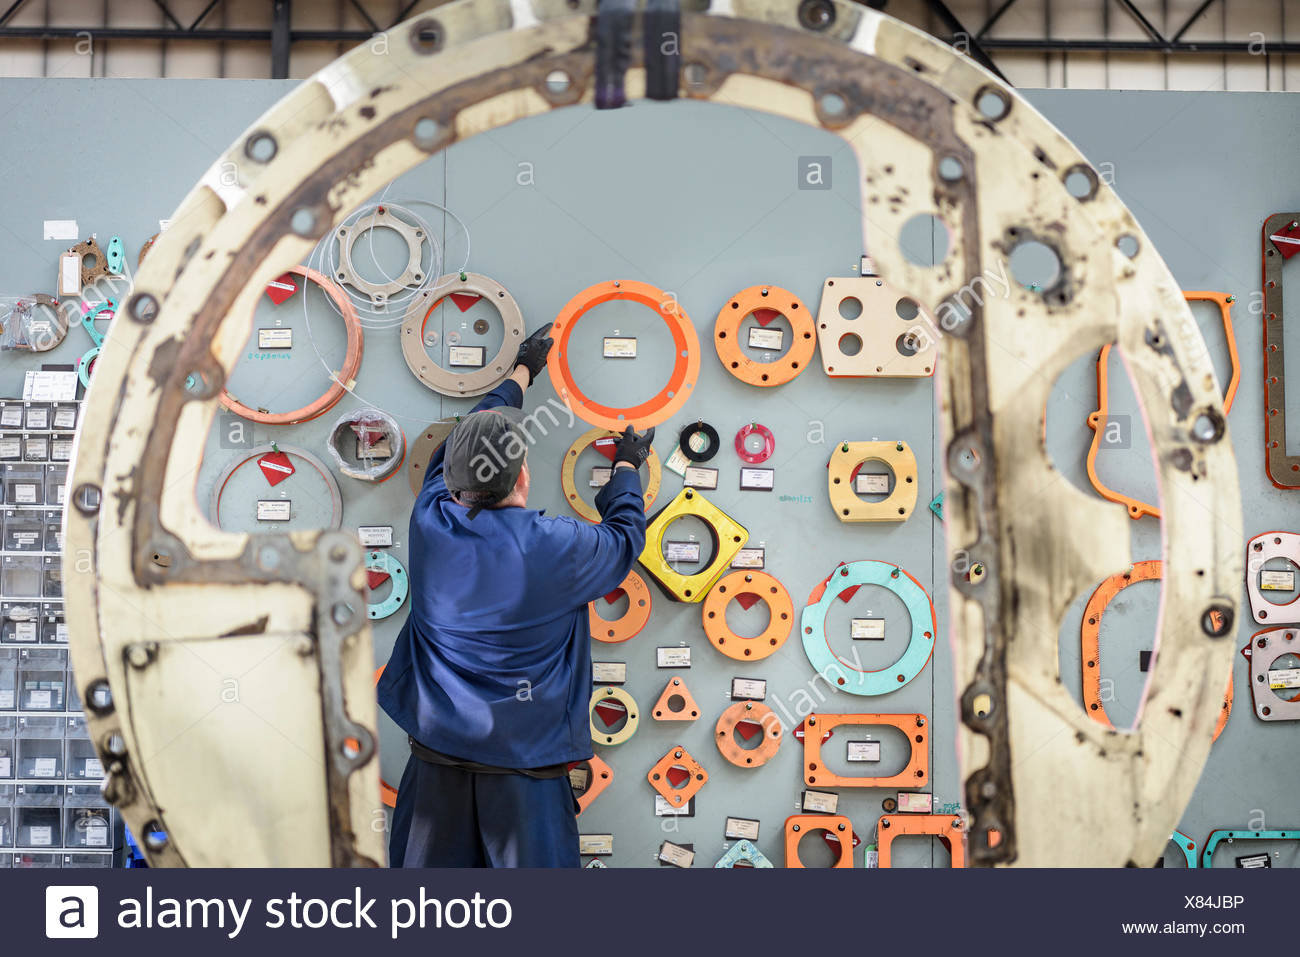 Locomotive engineer picking gaskets and seals in train works - Stock Image